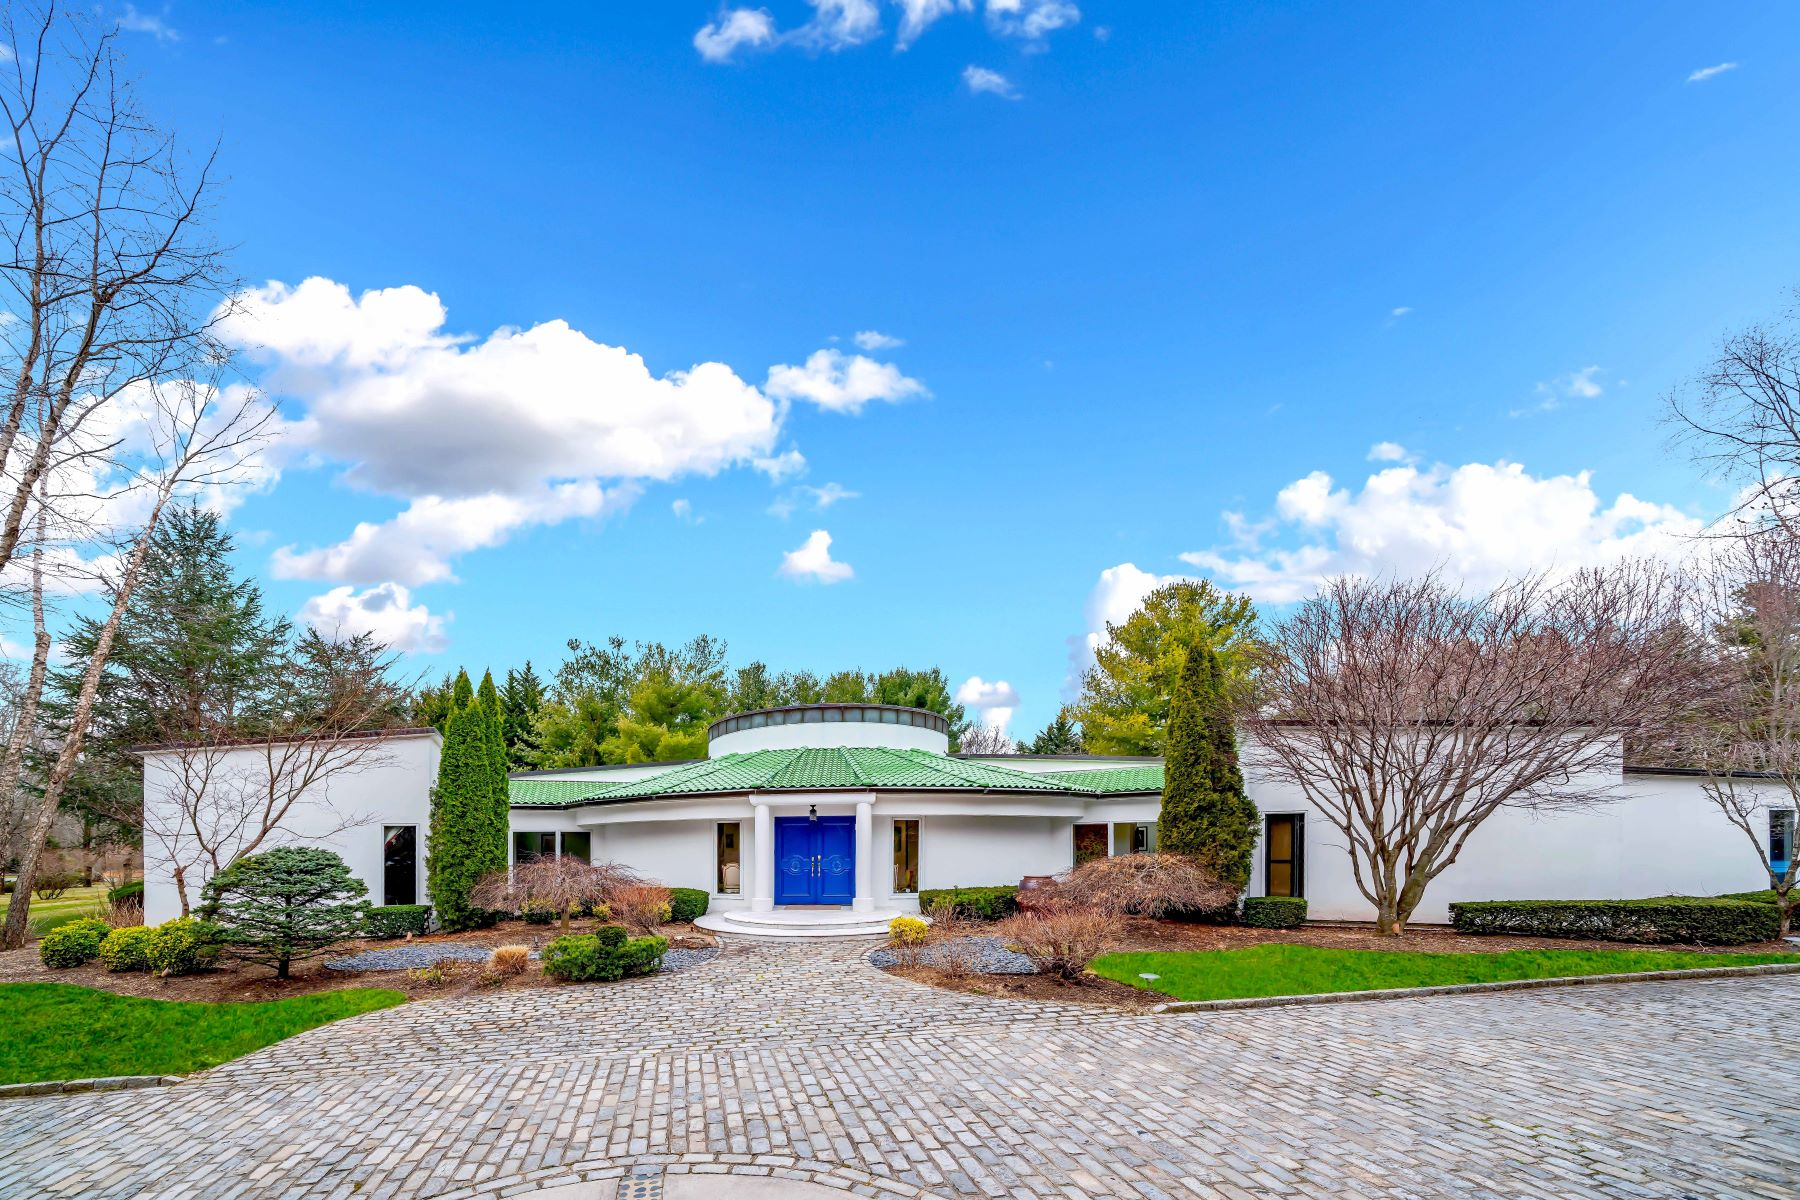 Single Family Homes for Active at Old Westbury 9 Trusdale Drive Old Westbury, New York 11568 United States